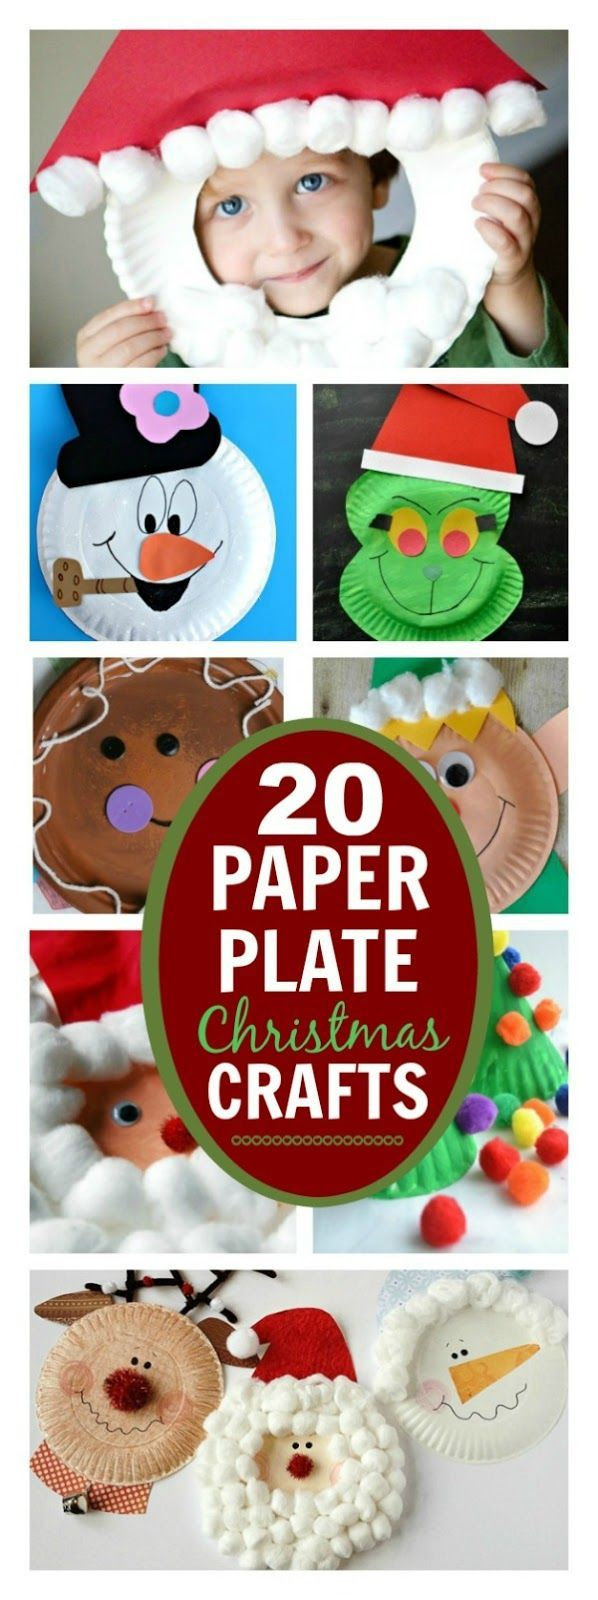 Crafts with Paper Plates – 20 Ideas for Christmas Baskets with Children